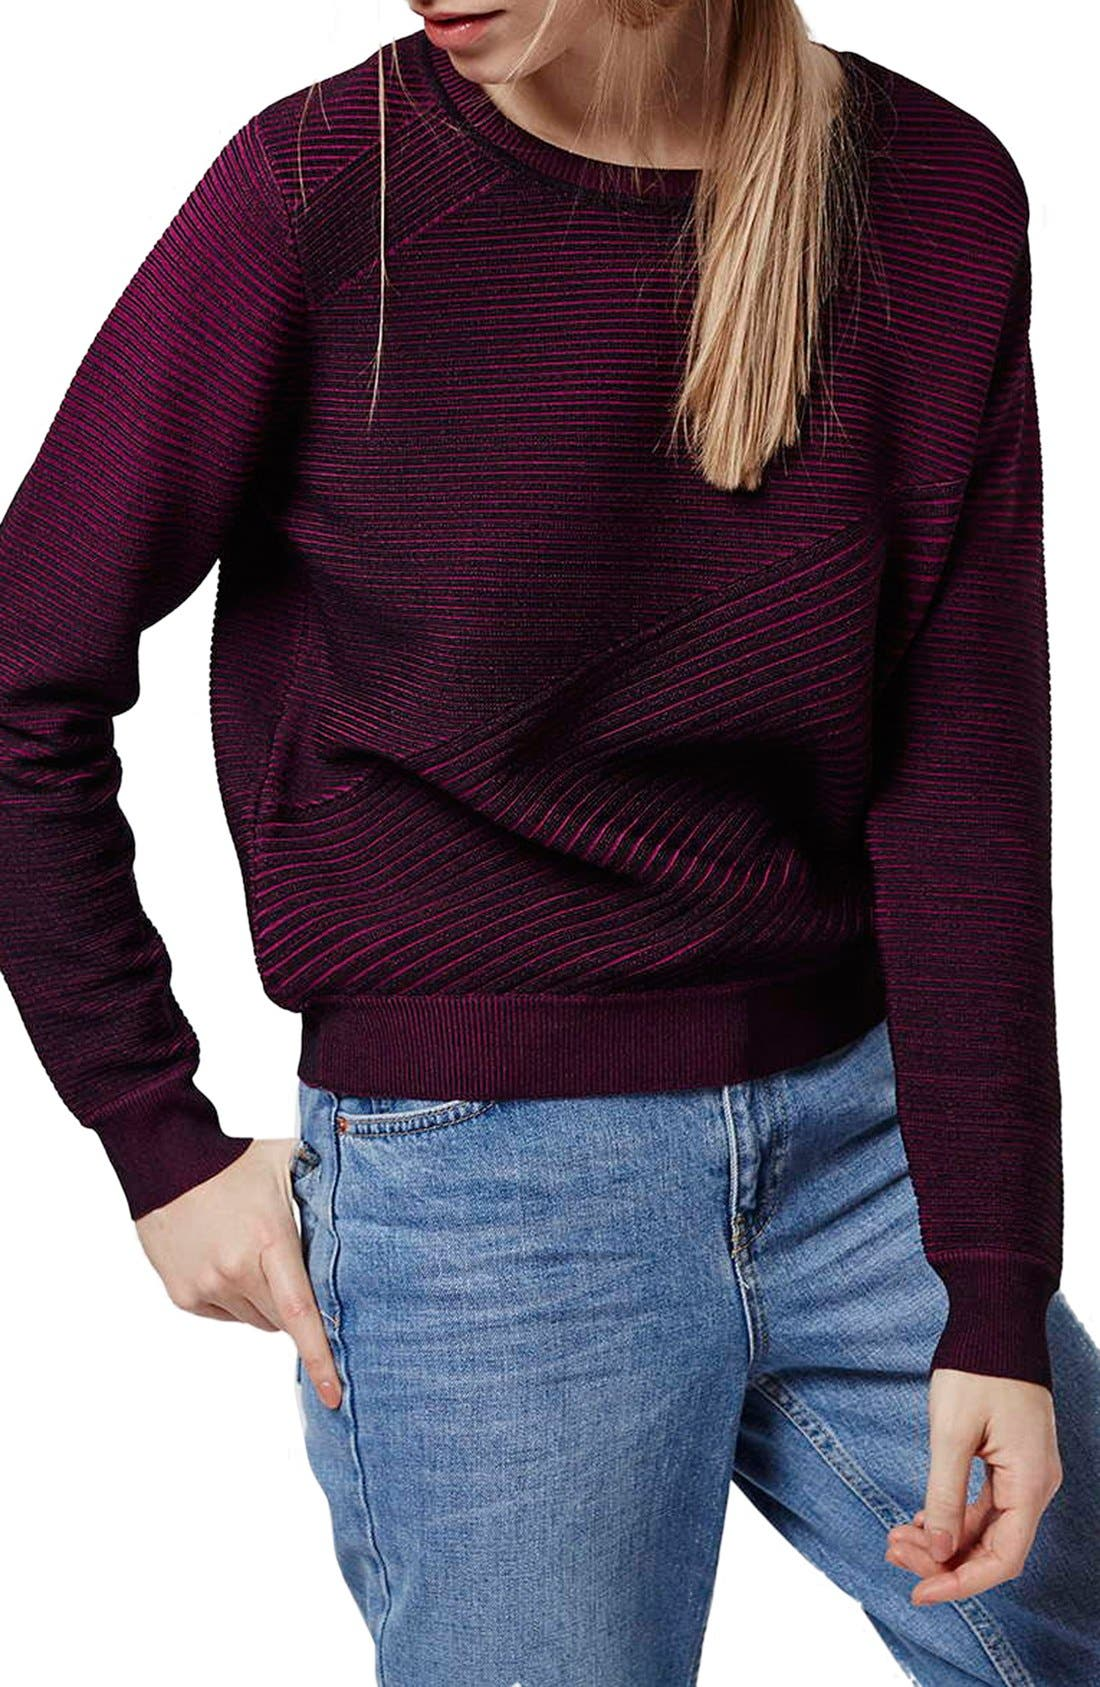 Main Image - Topshop Ribbed Sweater with Elbow Patches